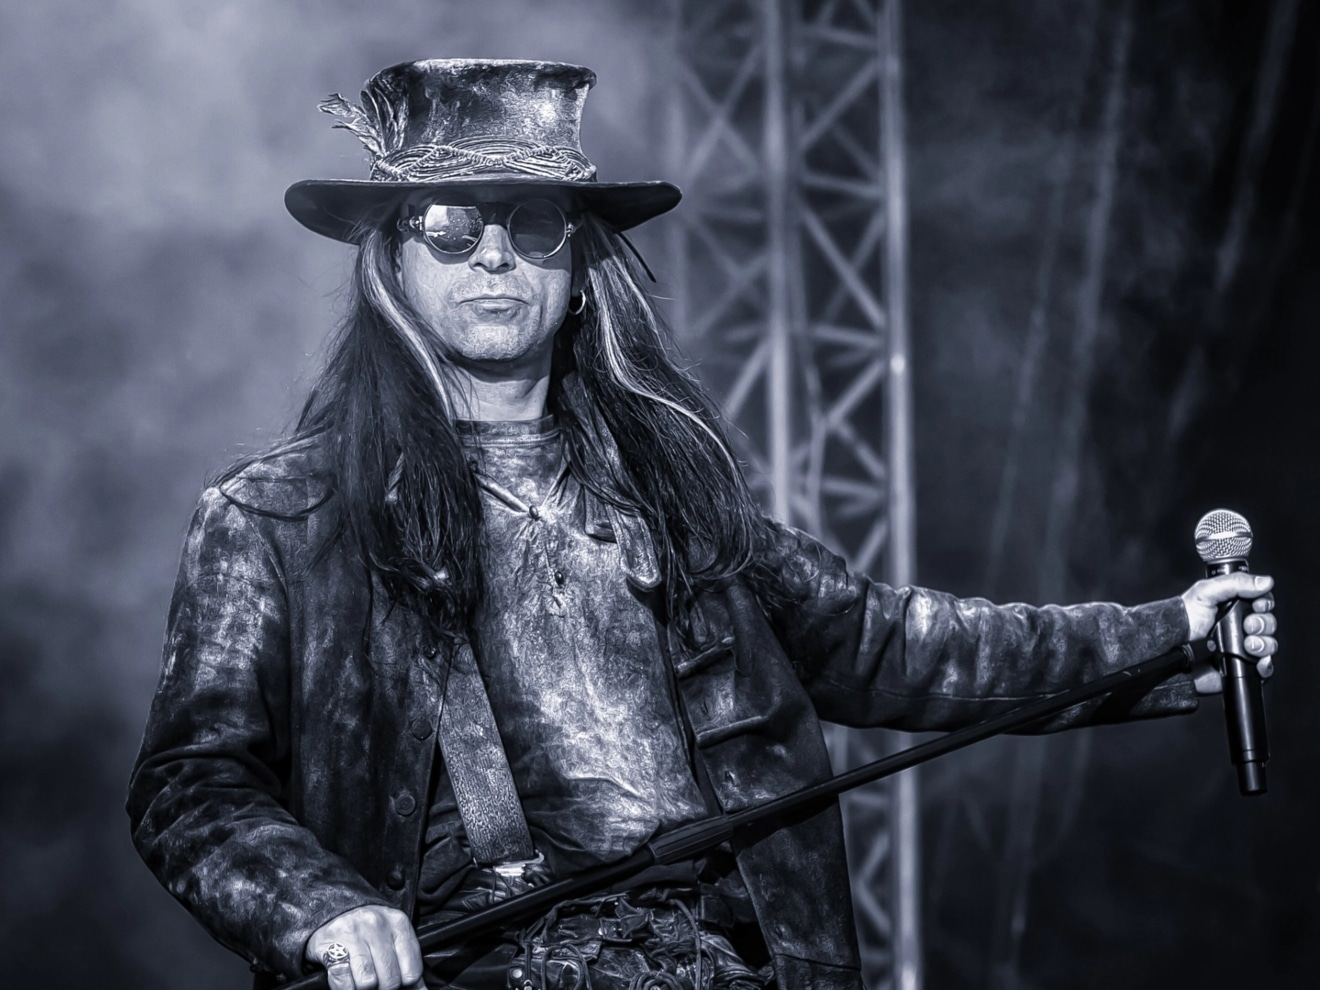 Aweinspiring festivals that revere the gothic subculture